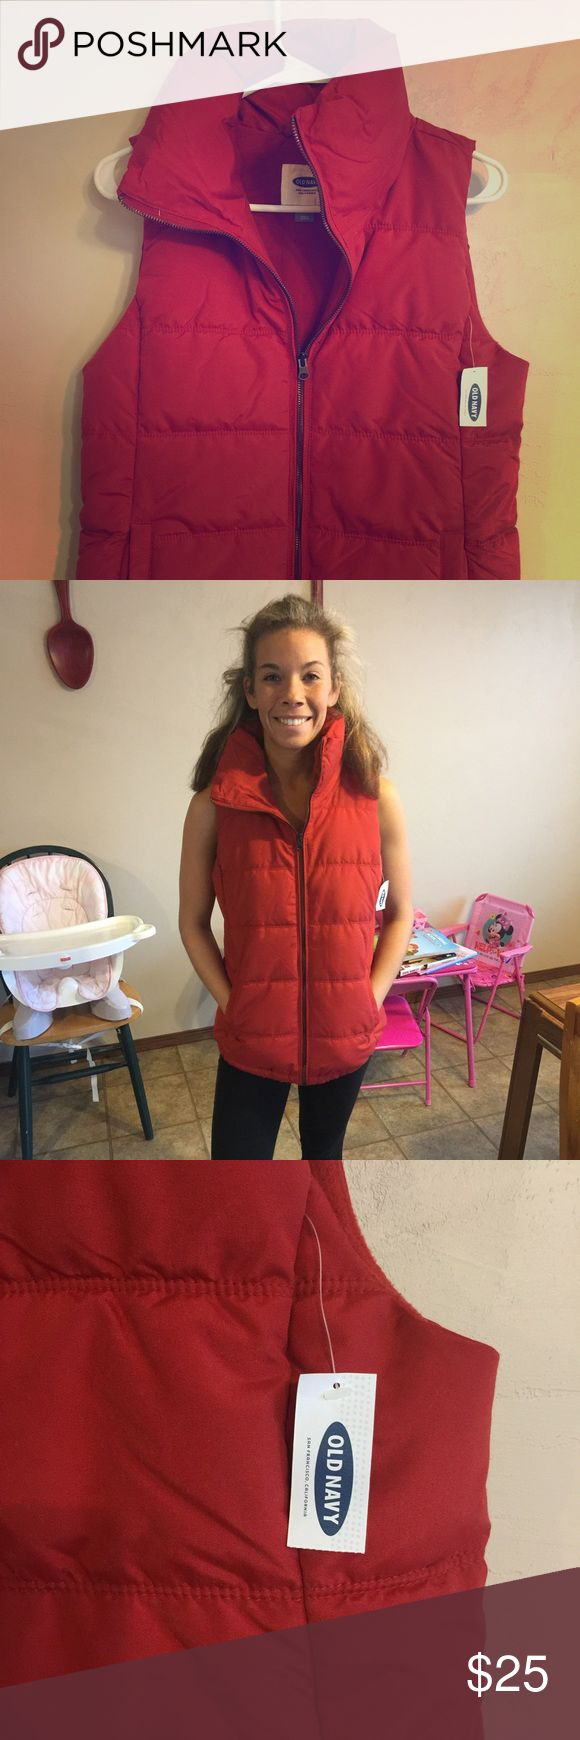 NWT Red Old Navy Vest!! Brand new with tags on it, size Small red Old Navy Vest! Super comfy and fleece on the inside! Old Navy Jackets & Coats Vests